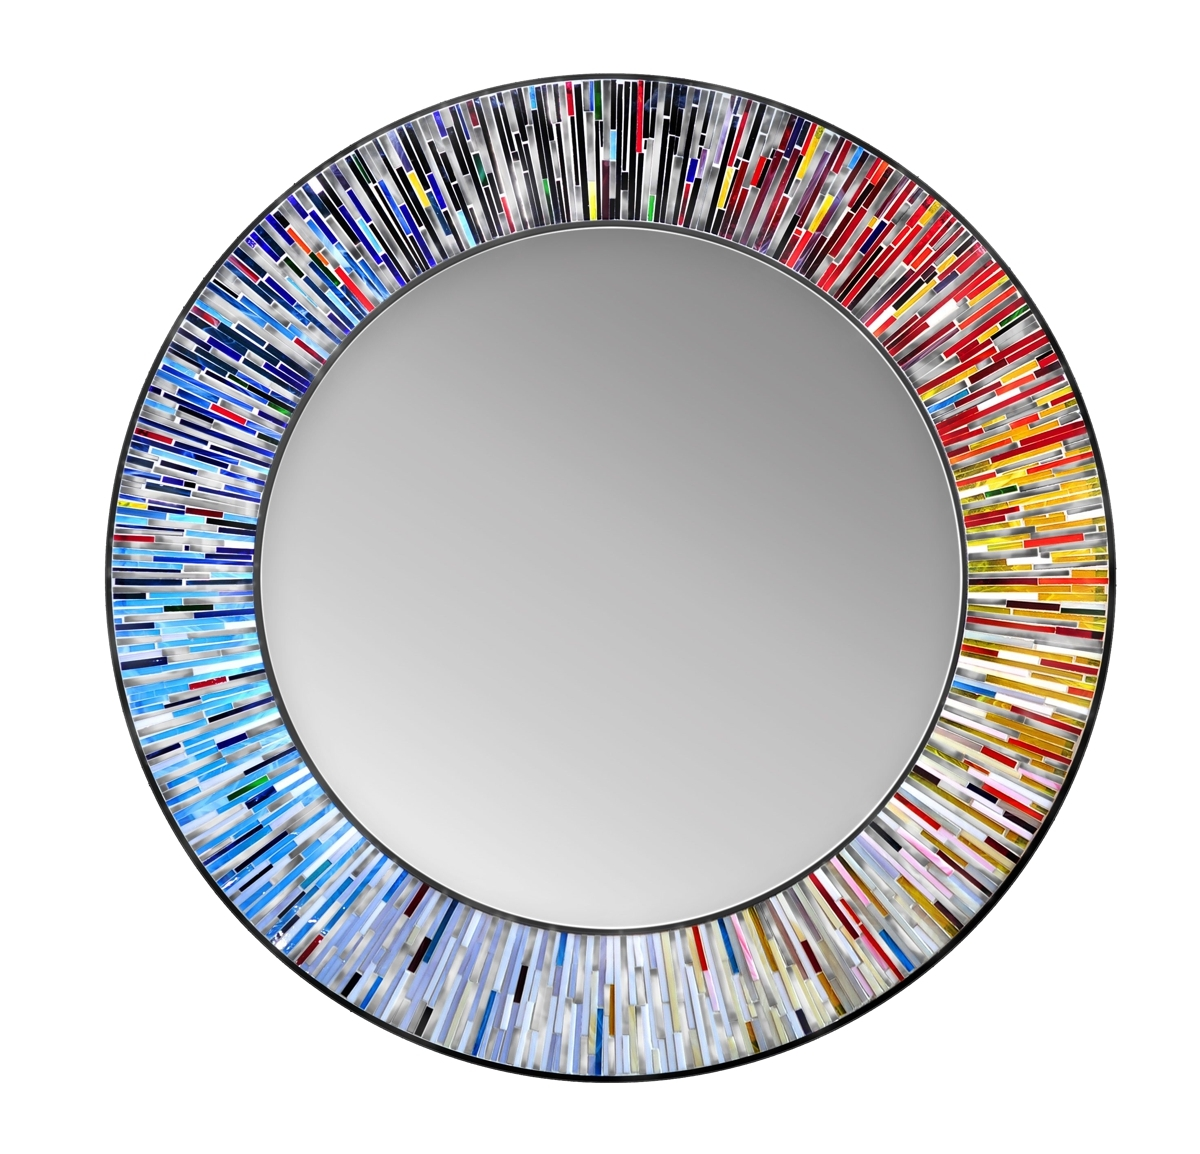 Uk Piaggi Roulette Round Feature Wall Mirror At Contemporary Heaven For Round Contemporary Mirror (Image 14 of 15)